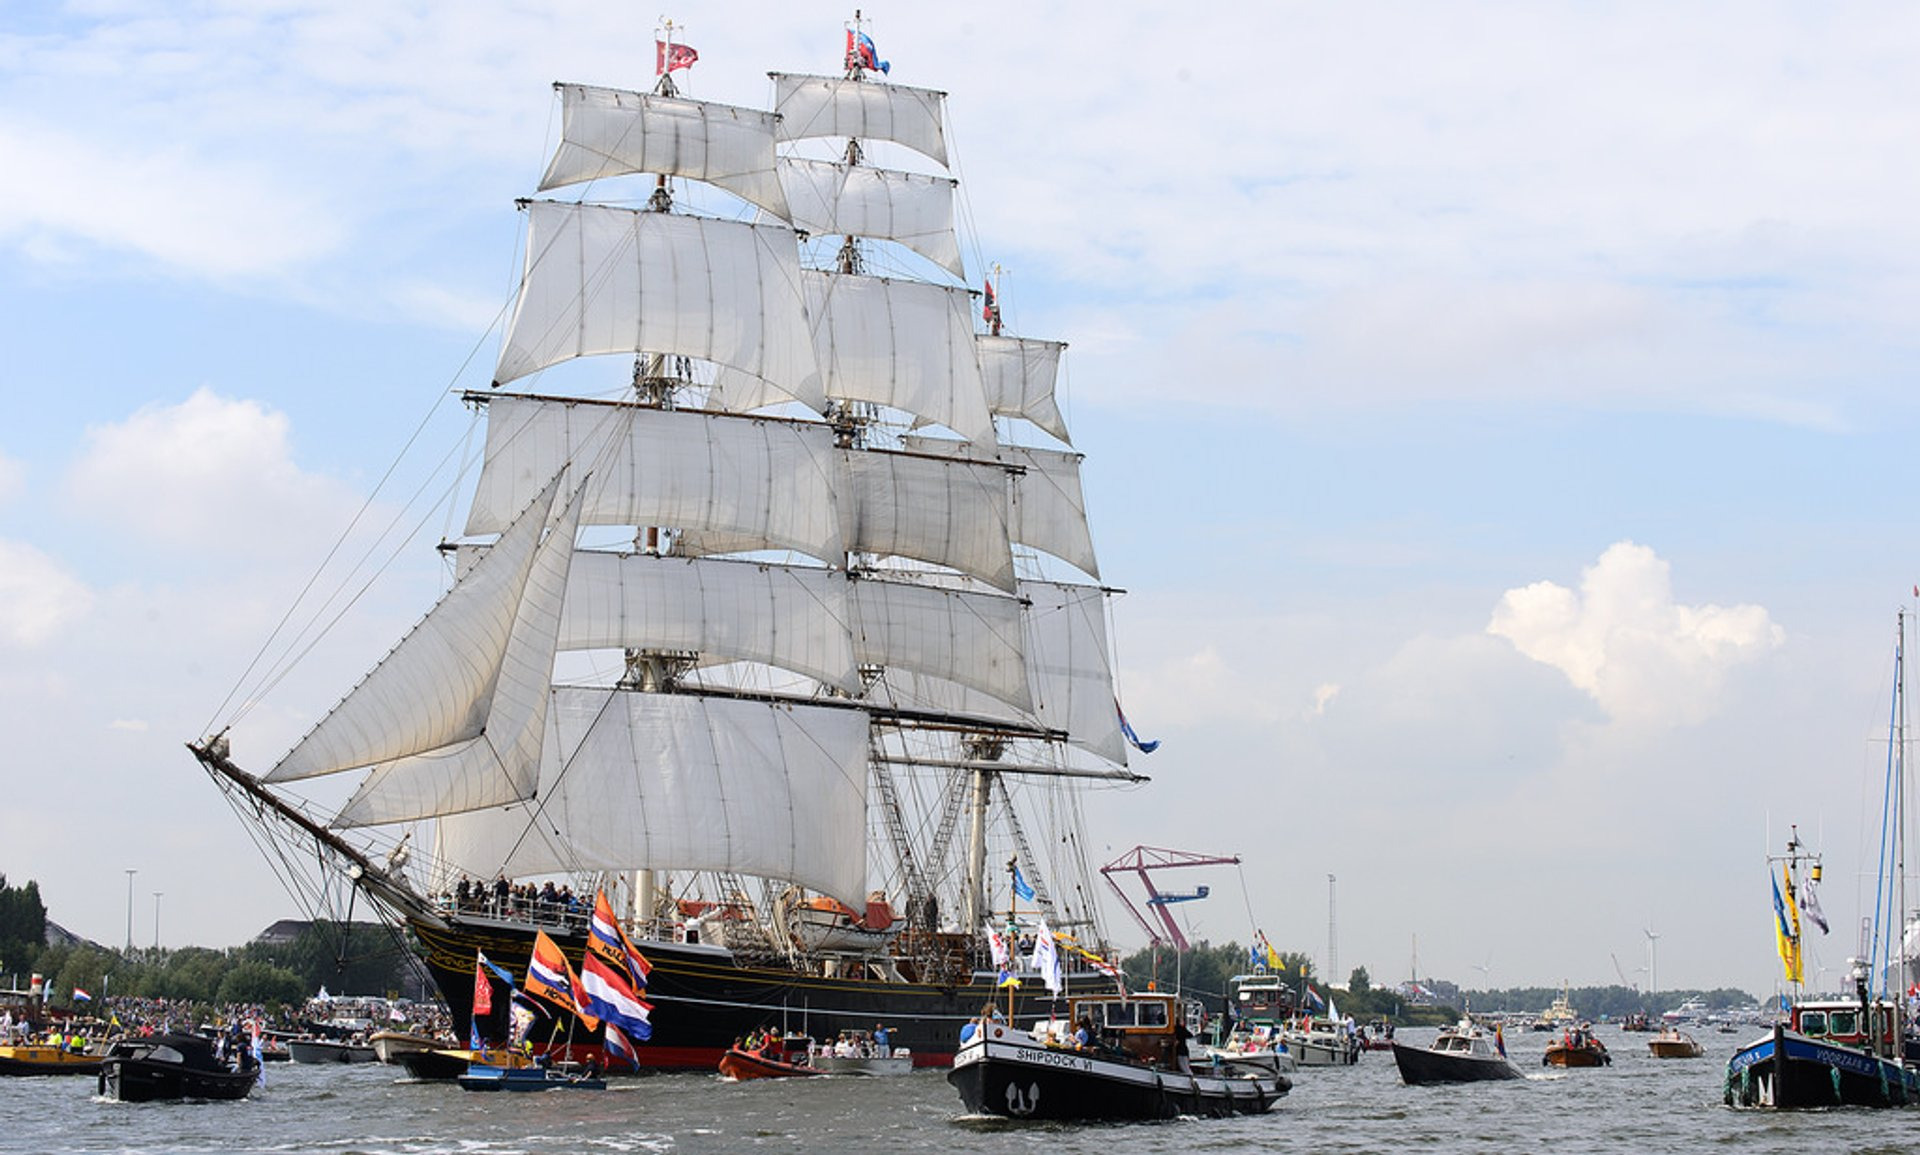 Sail Amsterdam in The Netherlands 2020 - Best Time